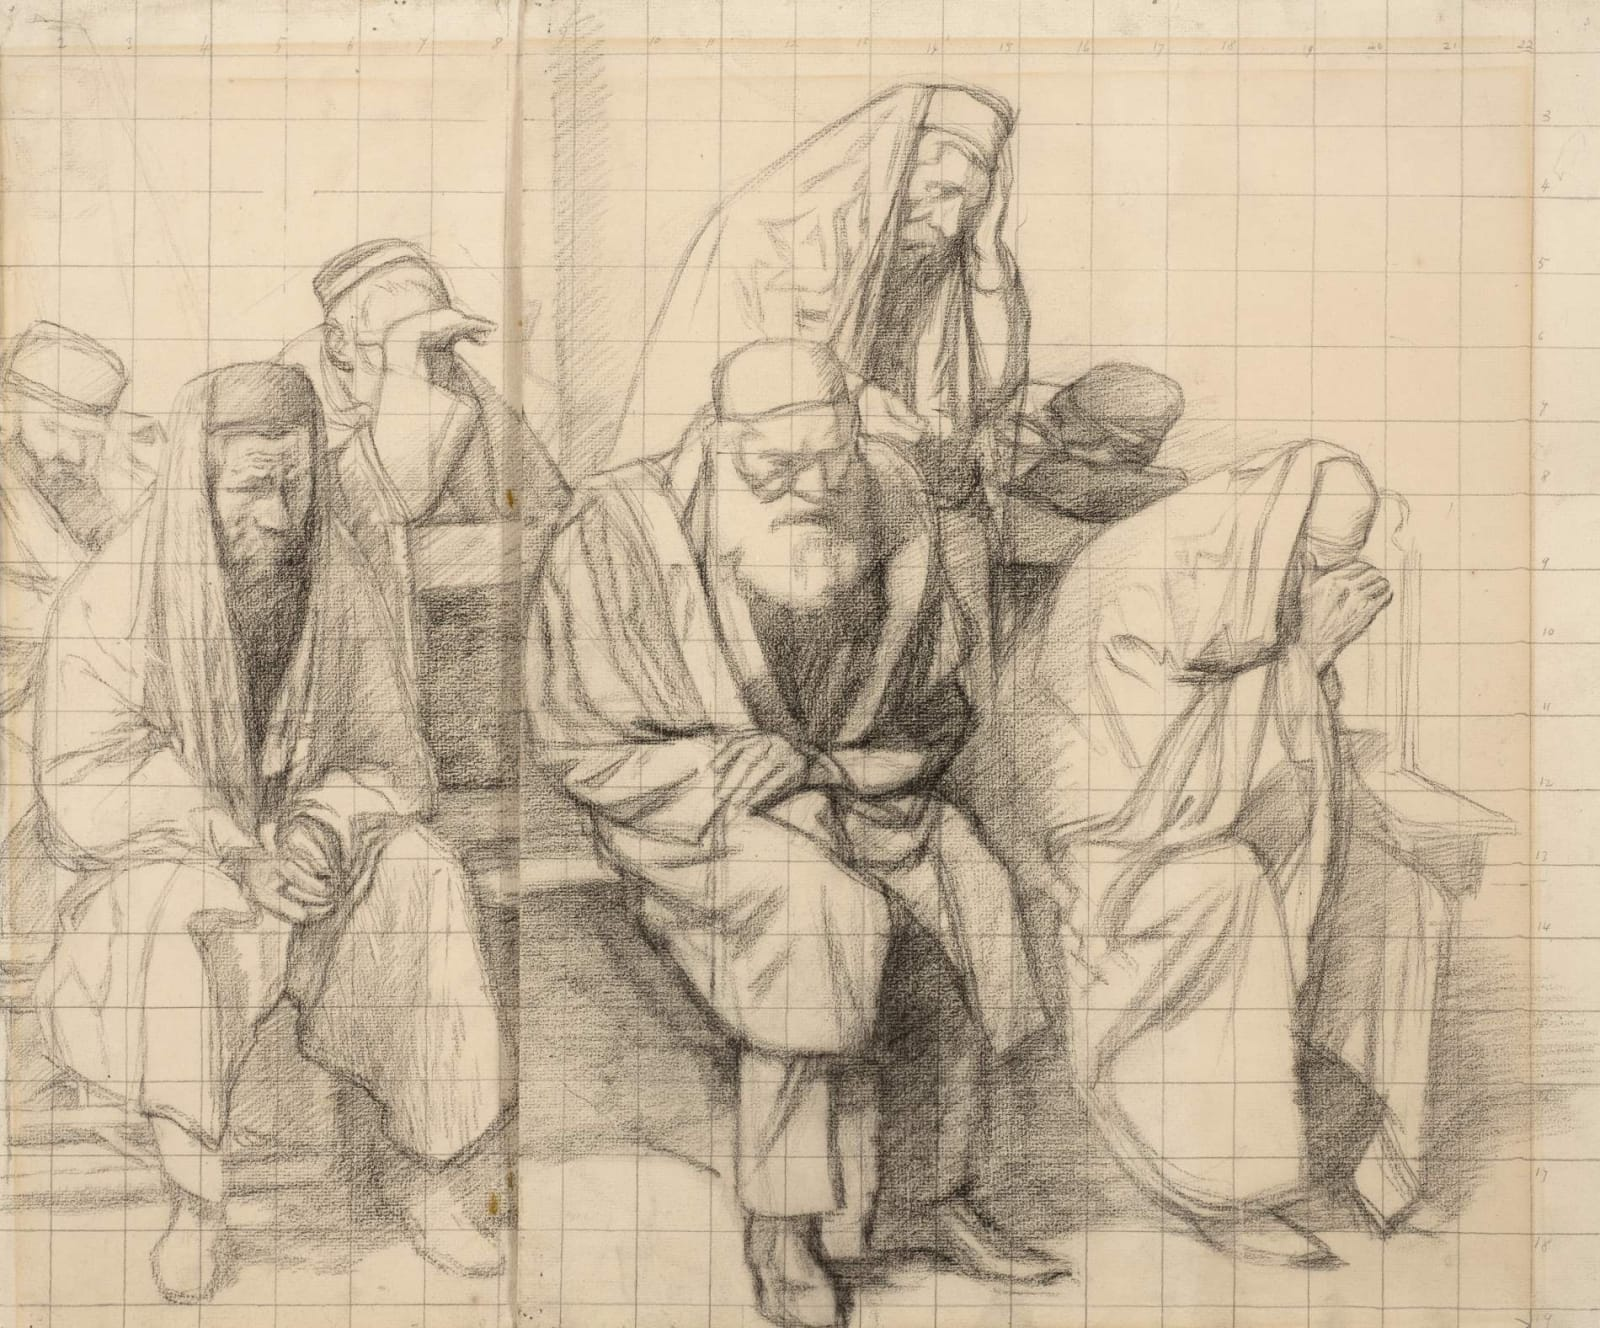 William Rothenstein (1872-1945) Jews Mourning in a Synagogue 1906 Pencil on squared paper 43.2 x 52.4 cm Bradford Museums and Galleries To see and discover more about this artist click here